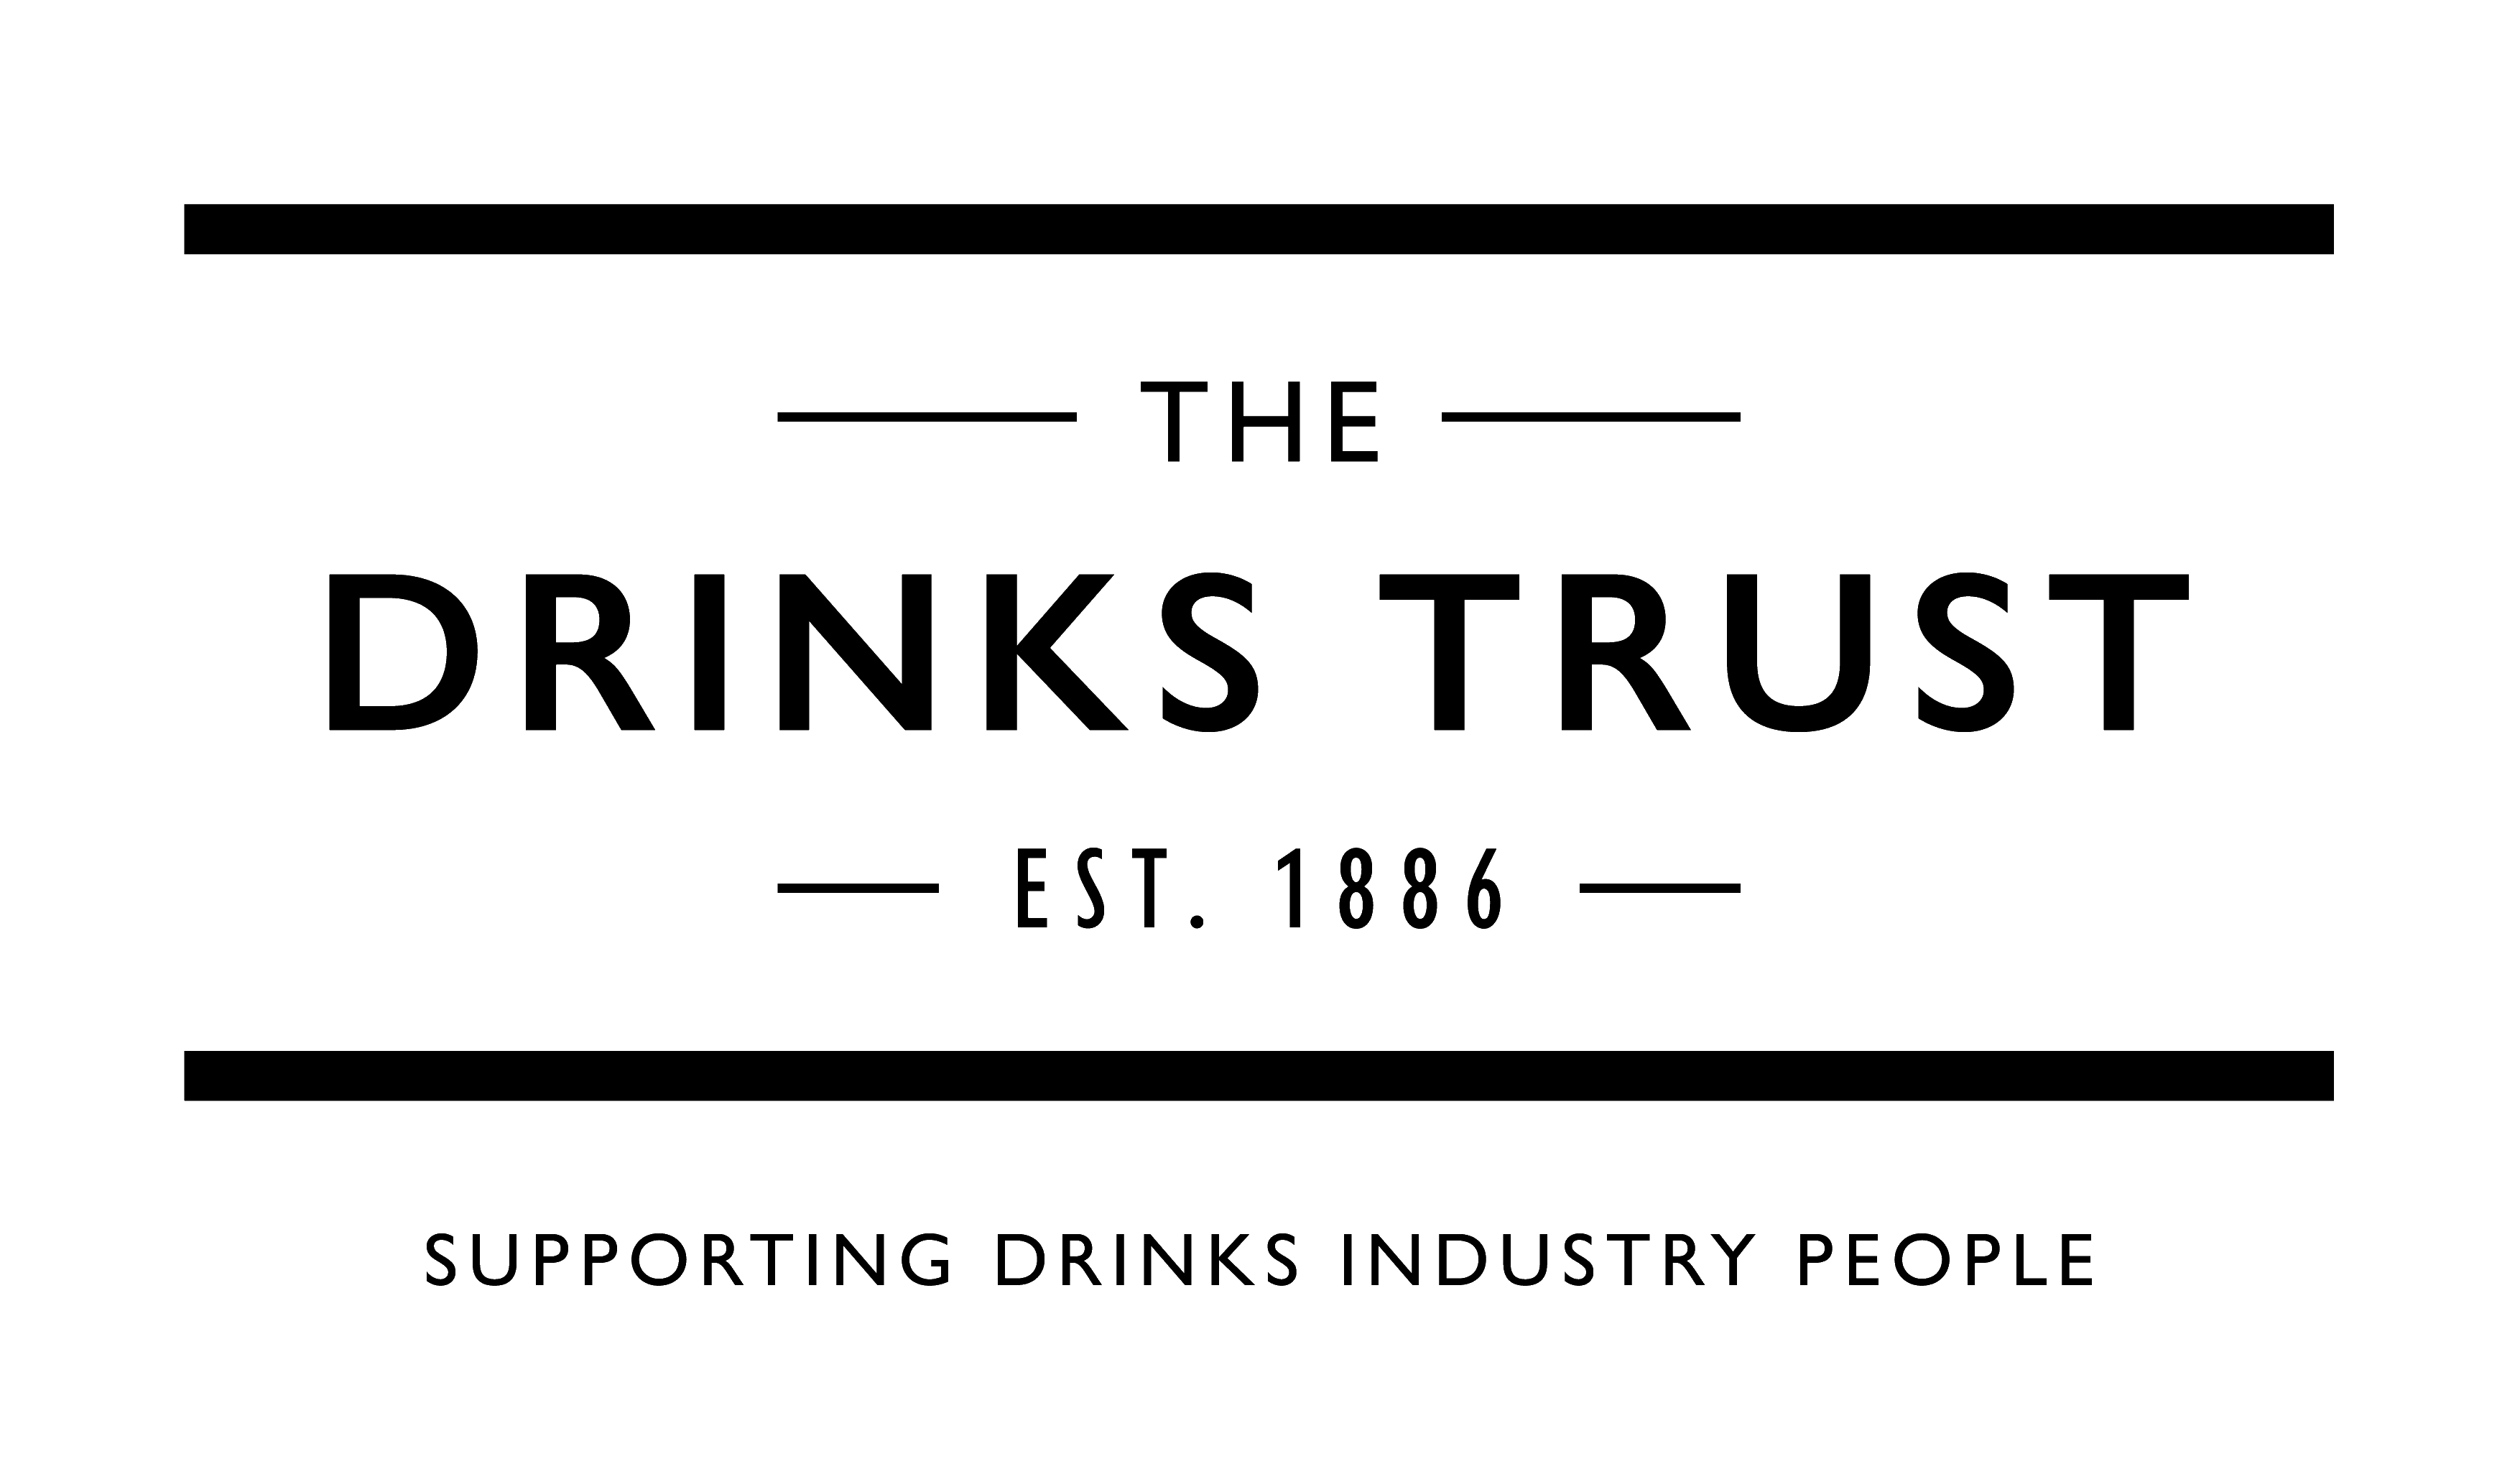 The Drinks Trust